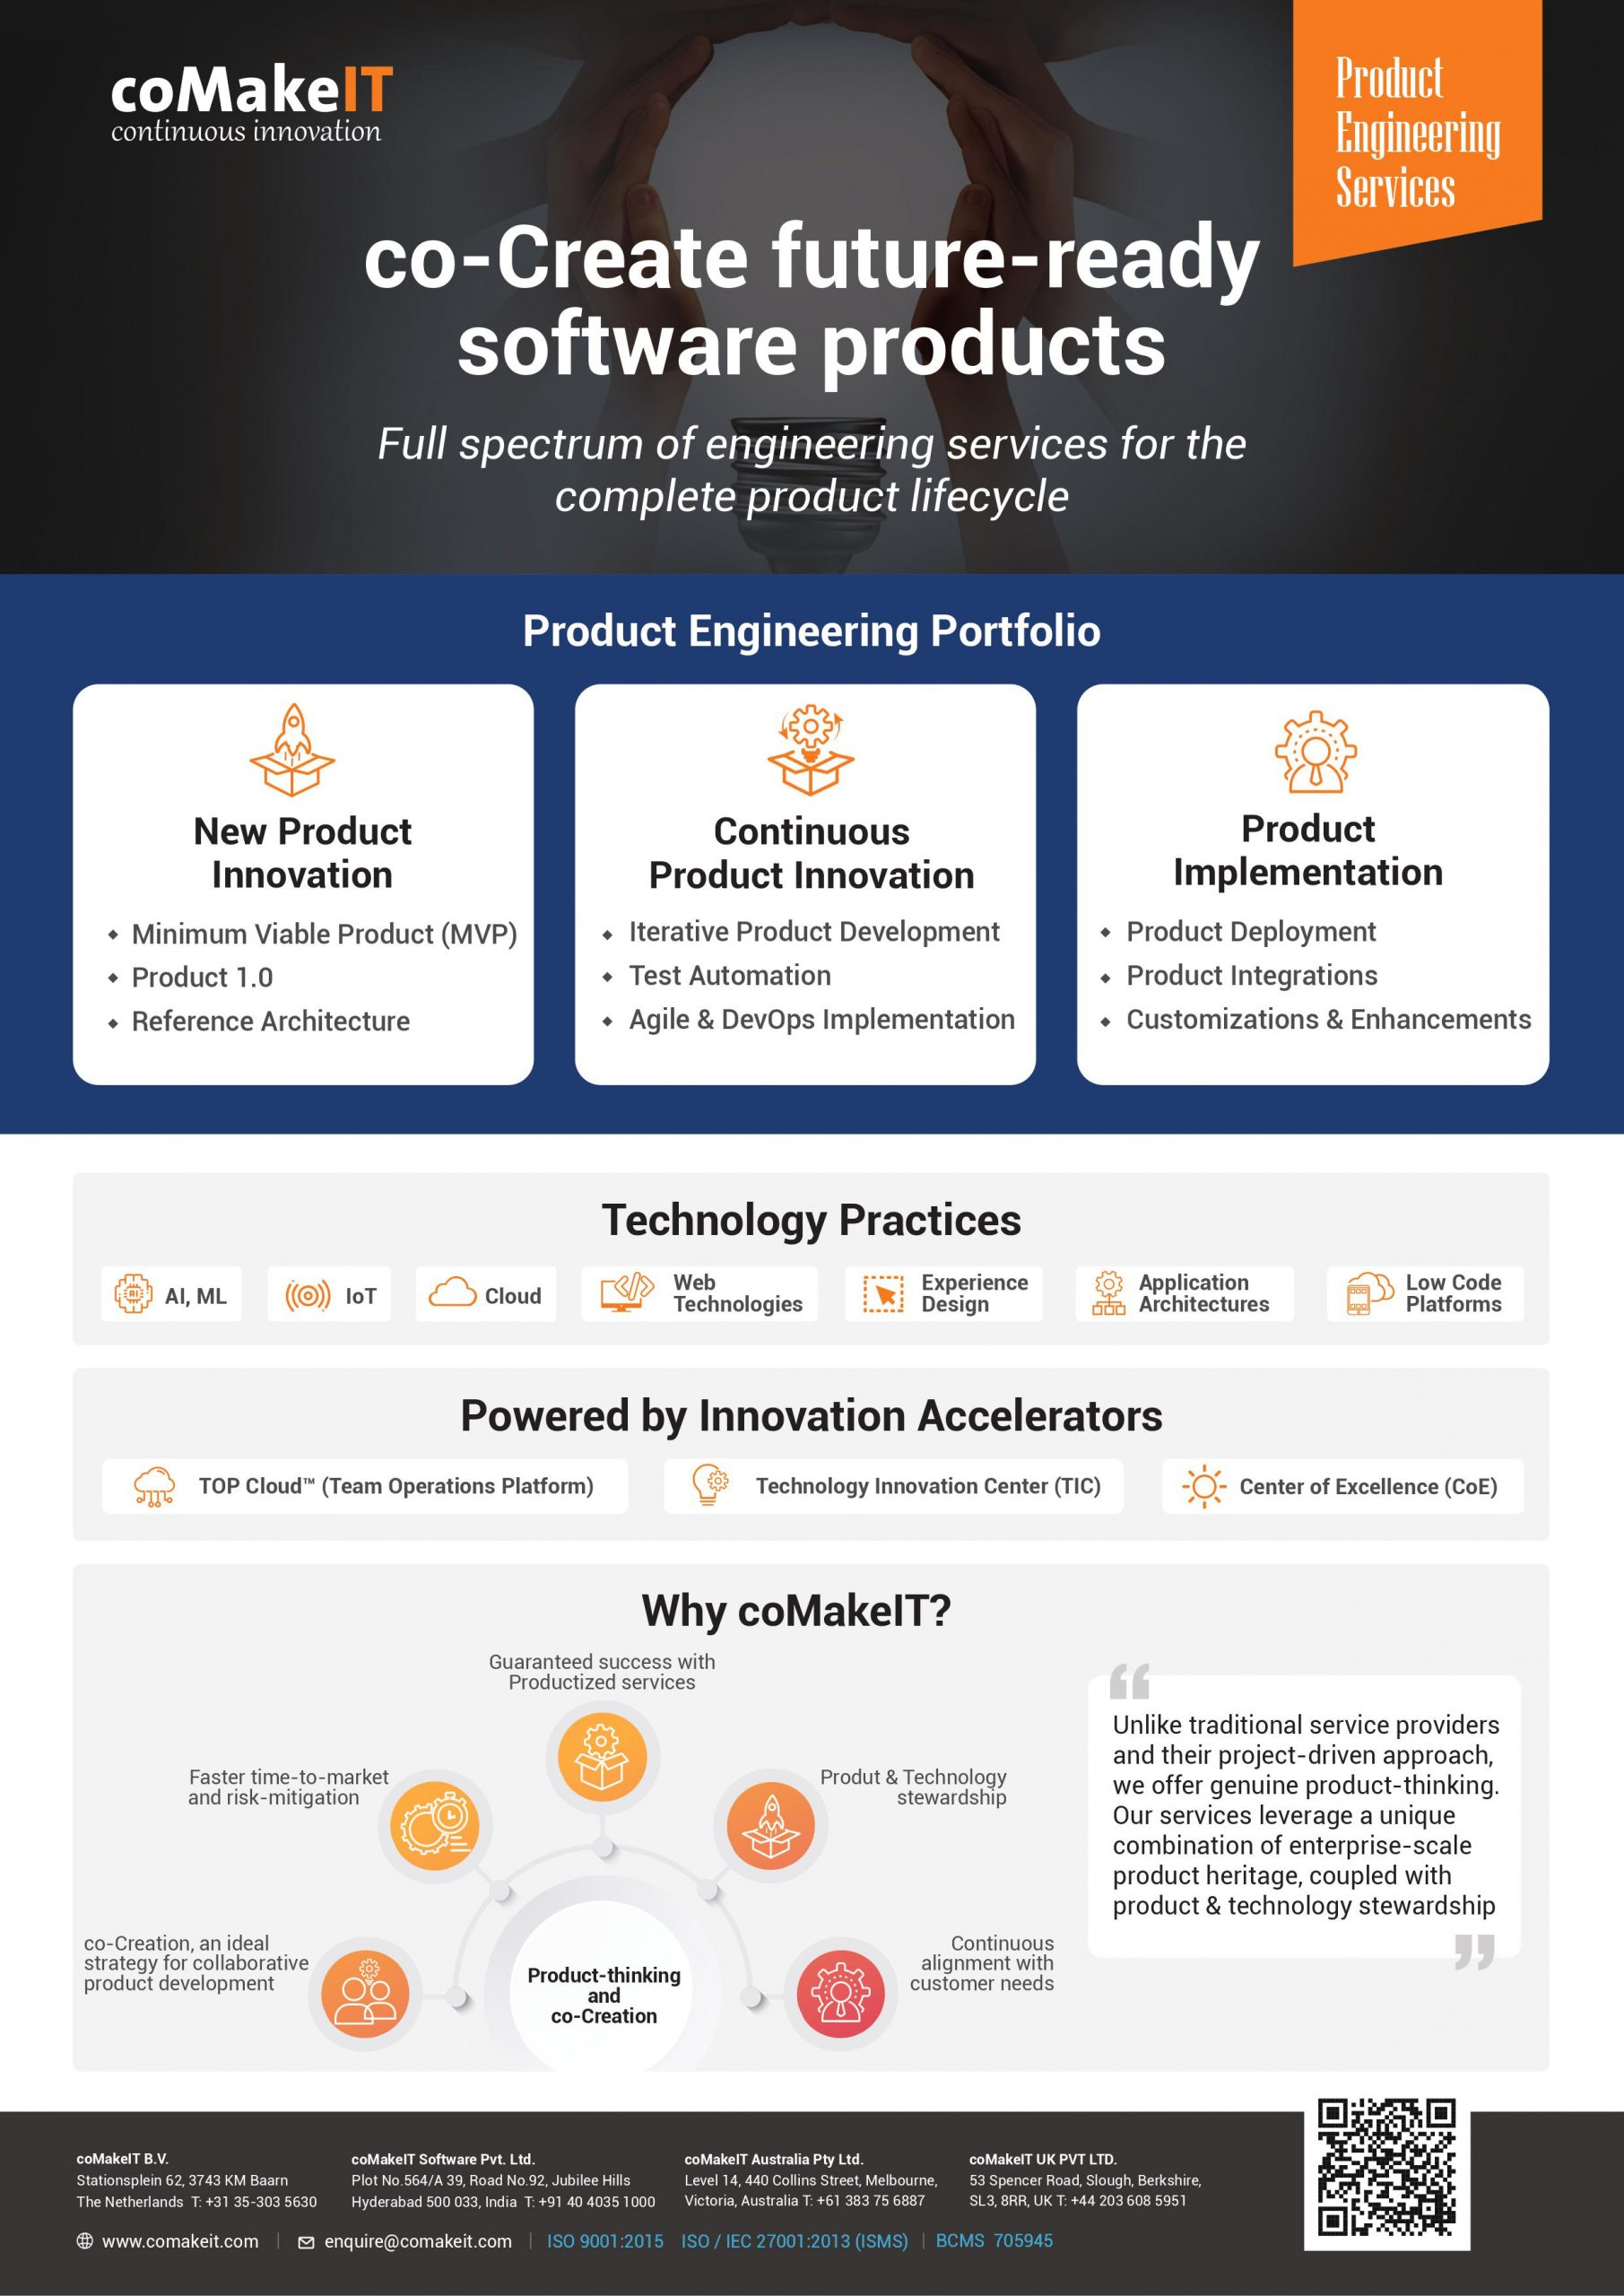 co-Create future-ready software products